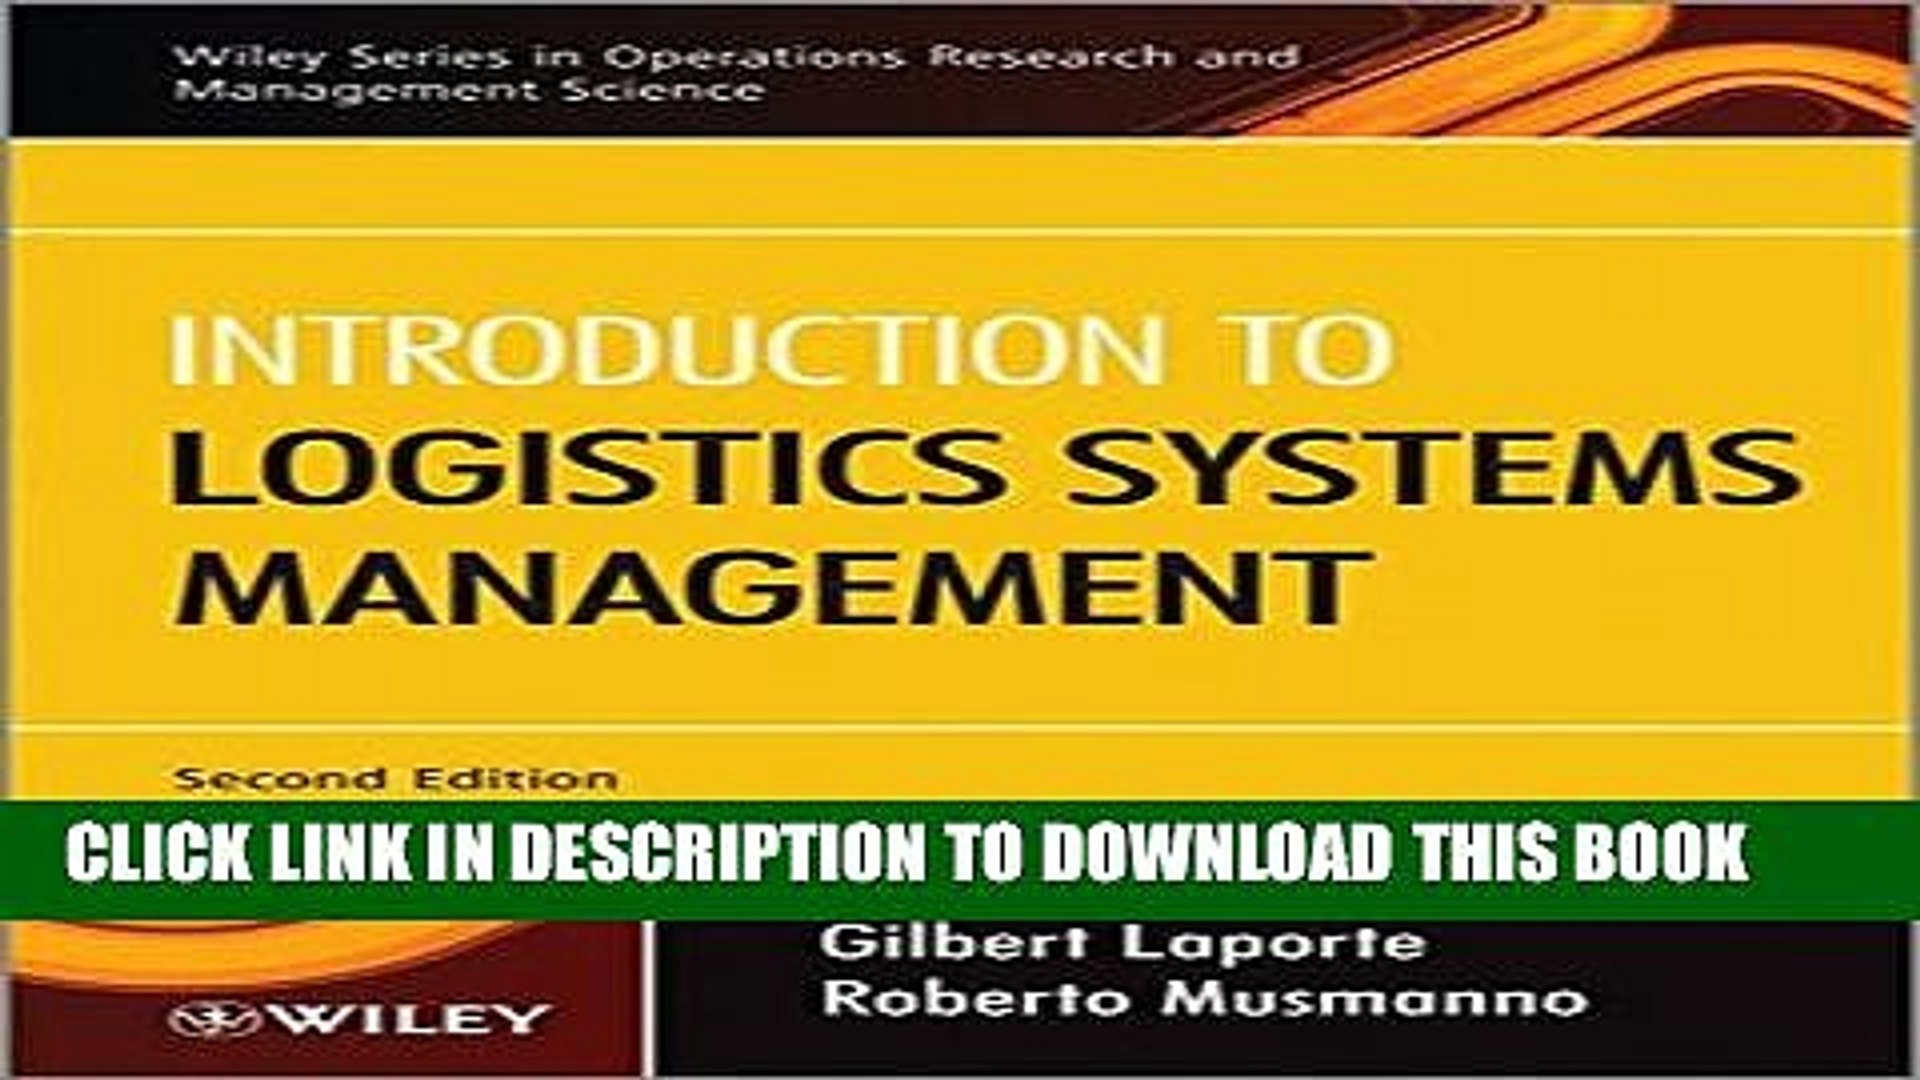 Introduction to Logistics Systems Management, Second Edition